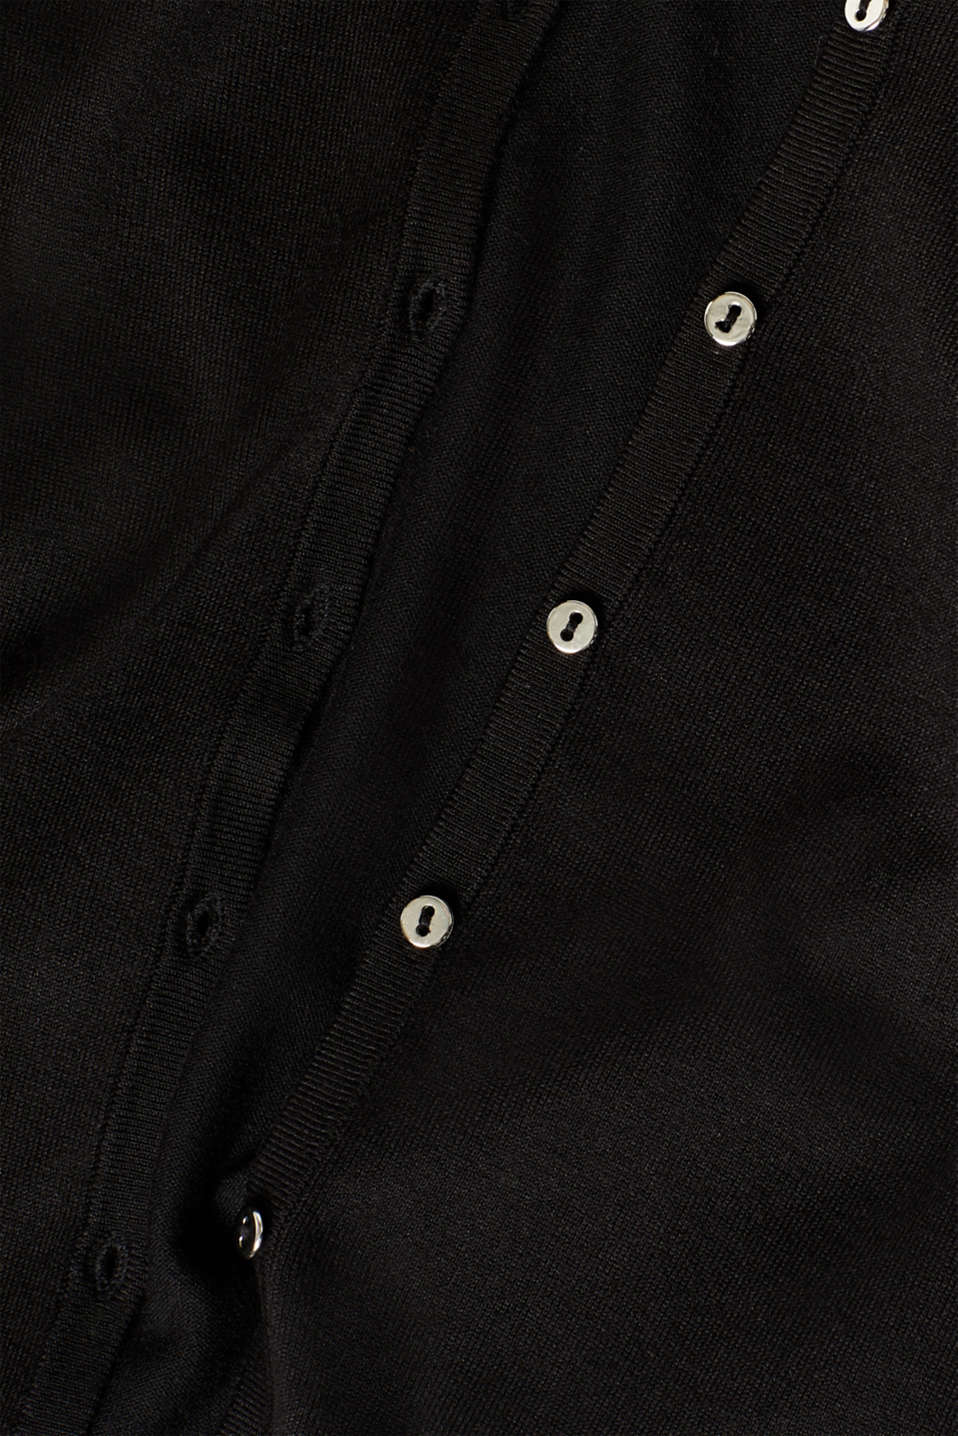 Fine knit cardigan with a round neckline, BLACK, detail image number 4